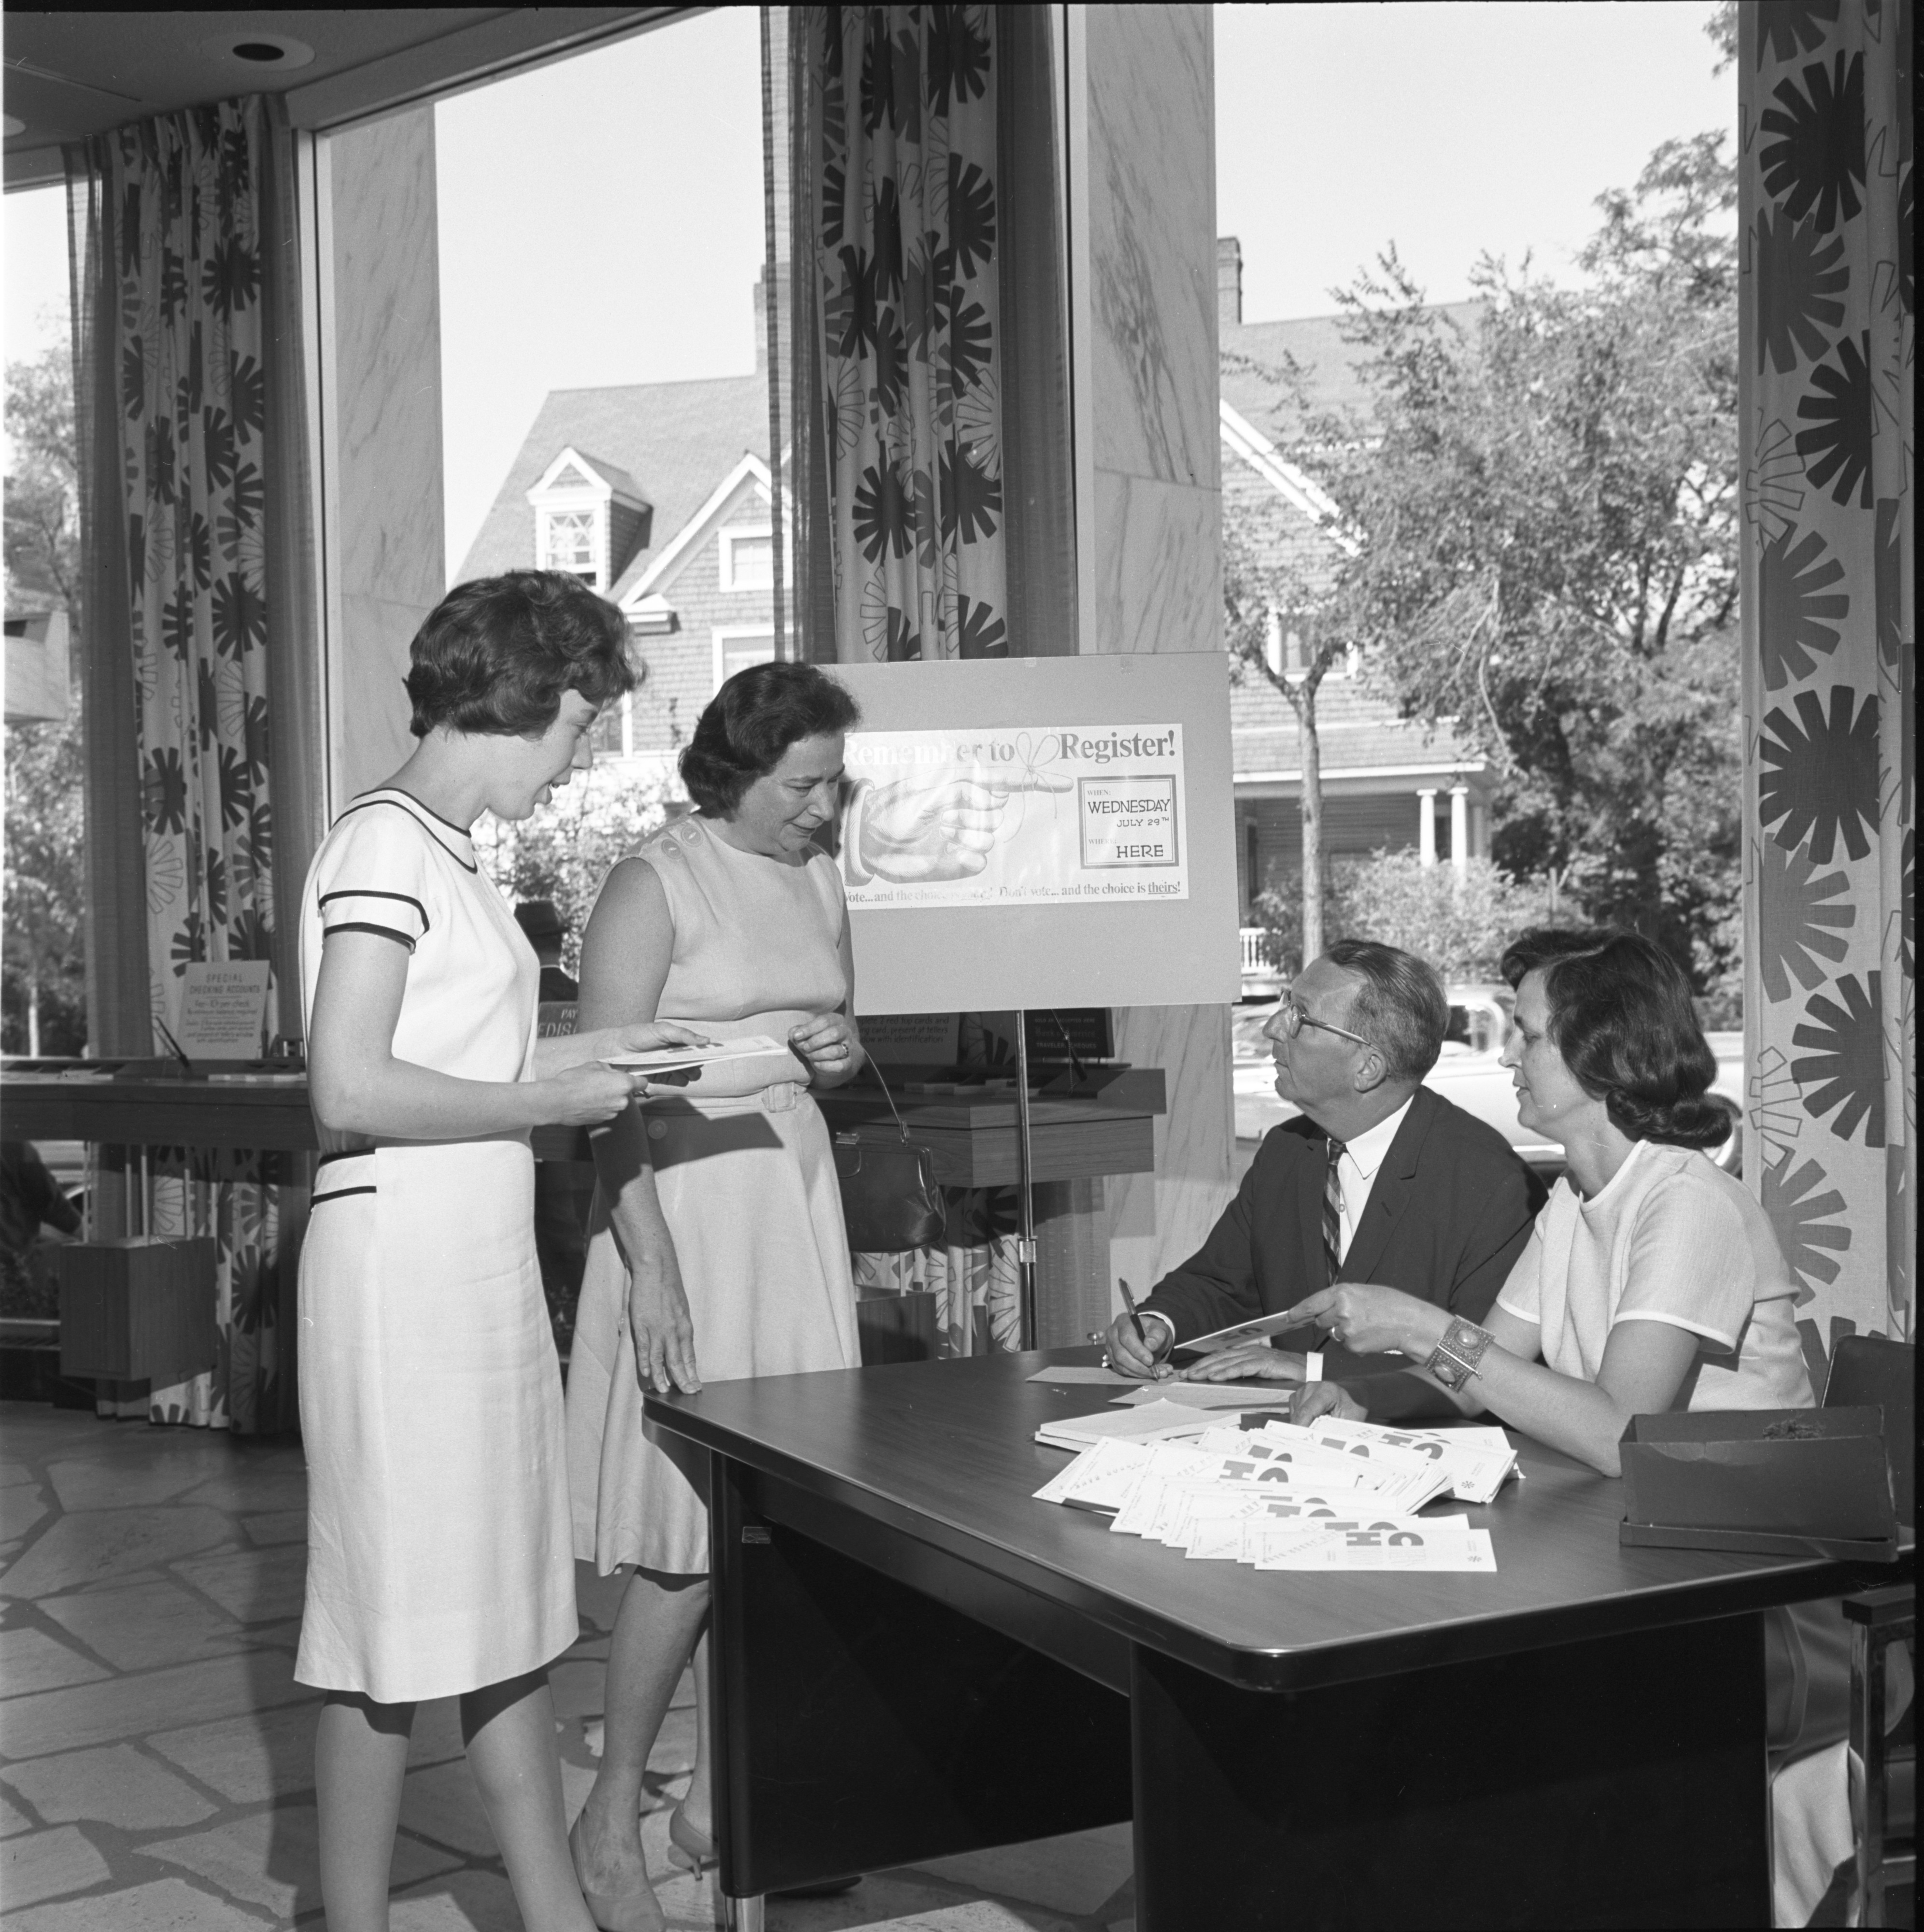 League Of Women Voters Promote Voter Registration At Ann Arbor Bank, July 1964 image